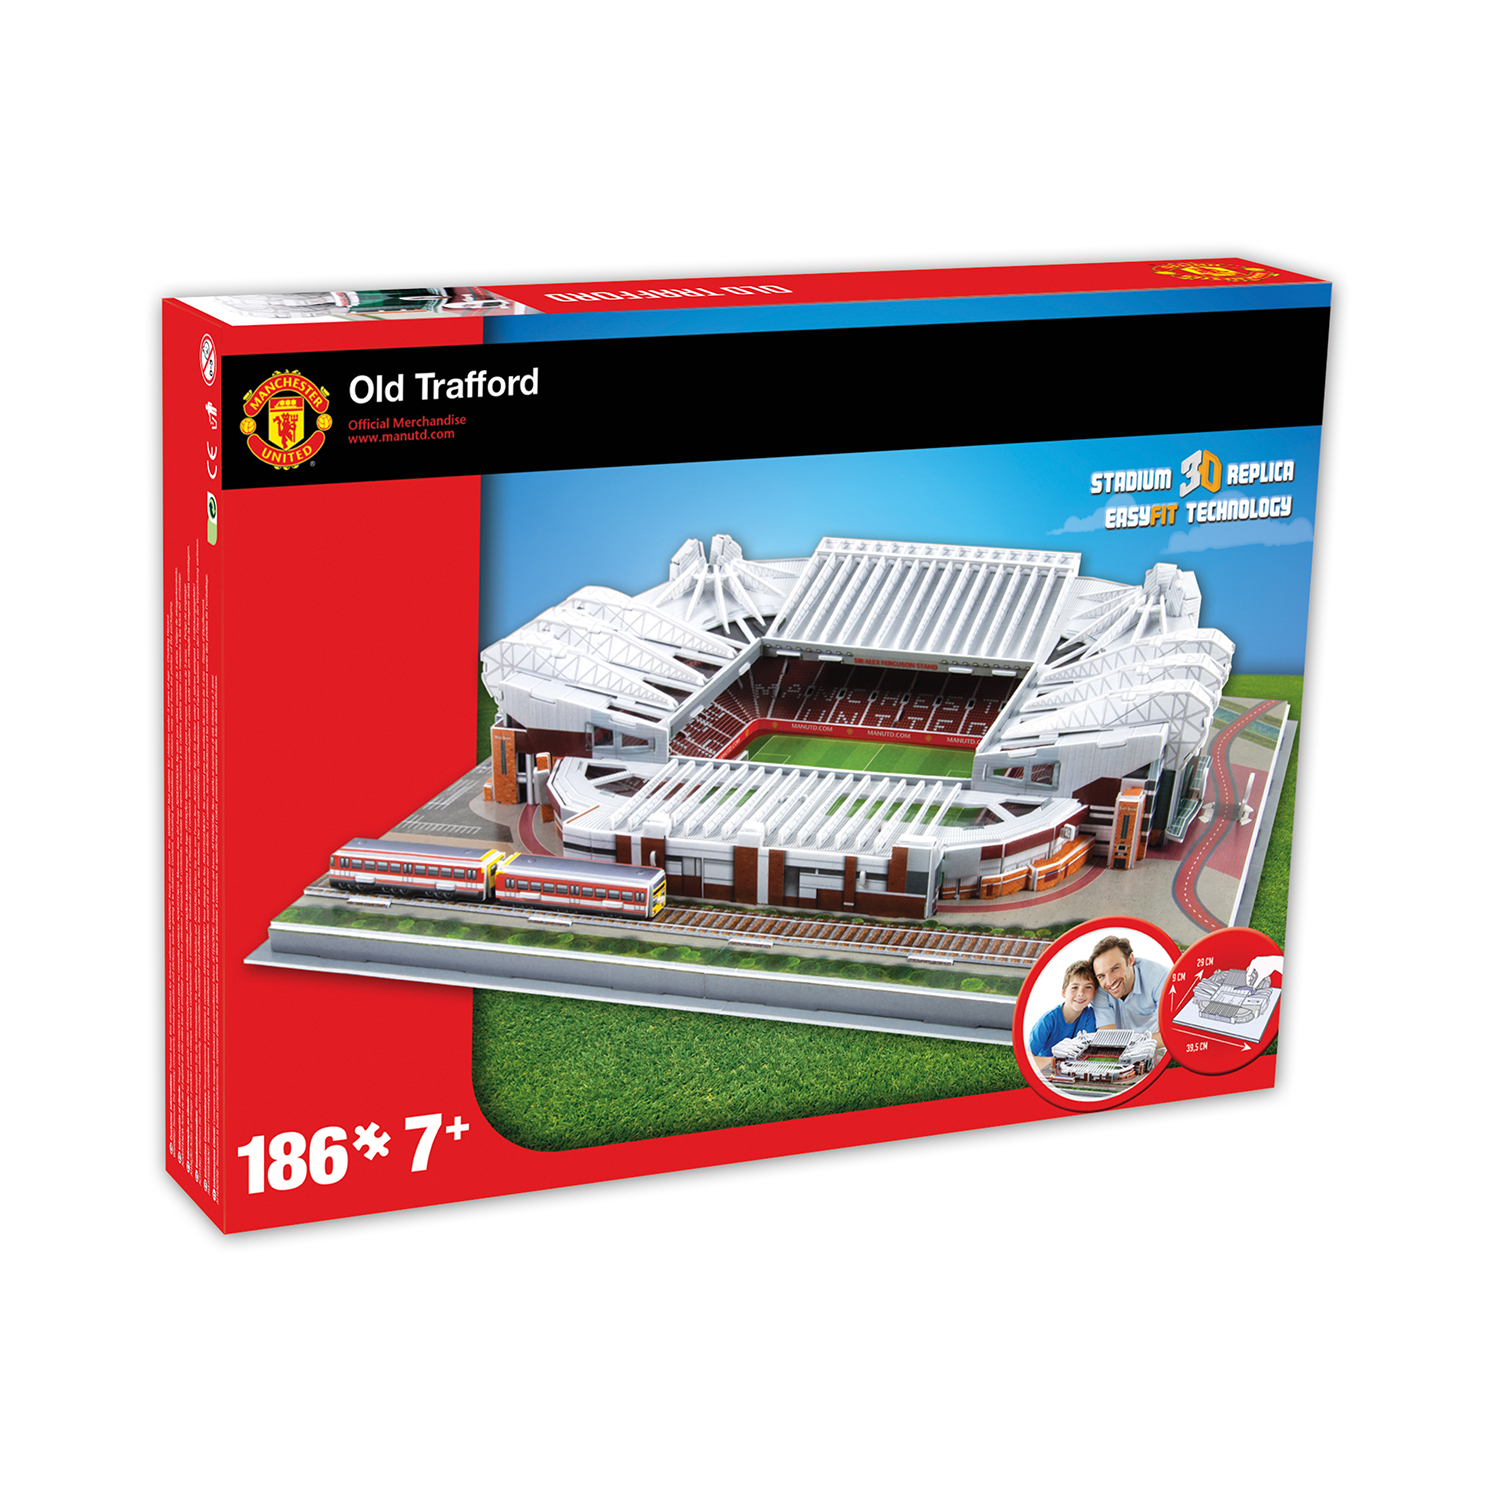 Paul Lamond Games – Manchester Utd Old Trafford Stadium 3D Puzzle